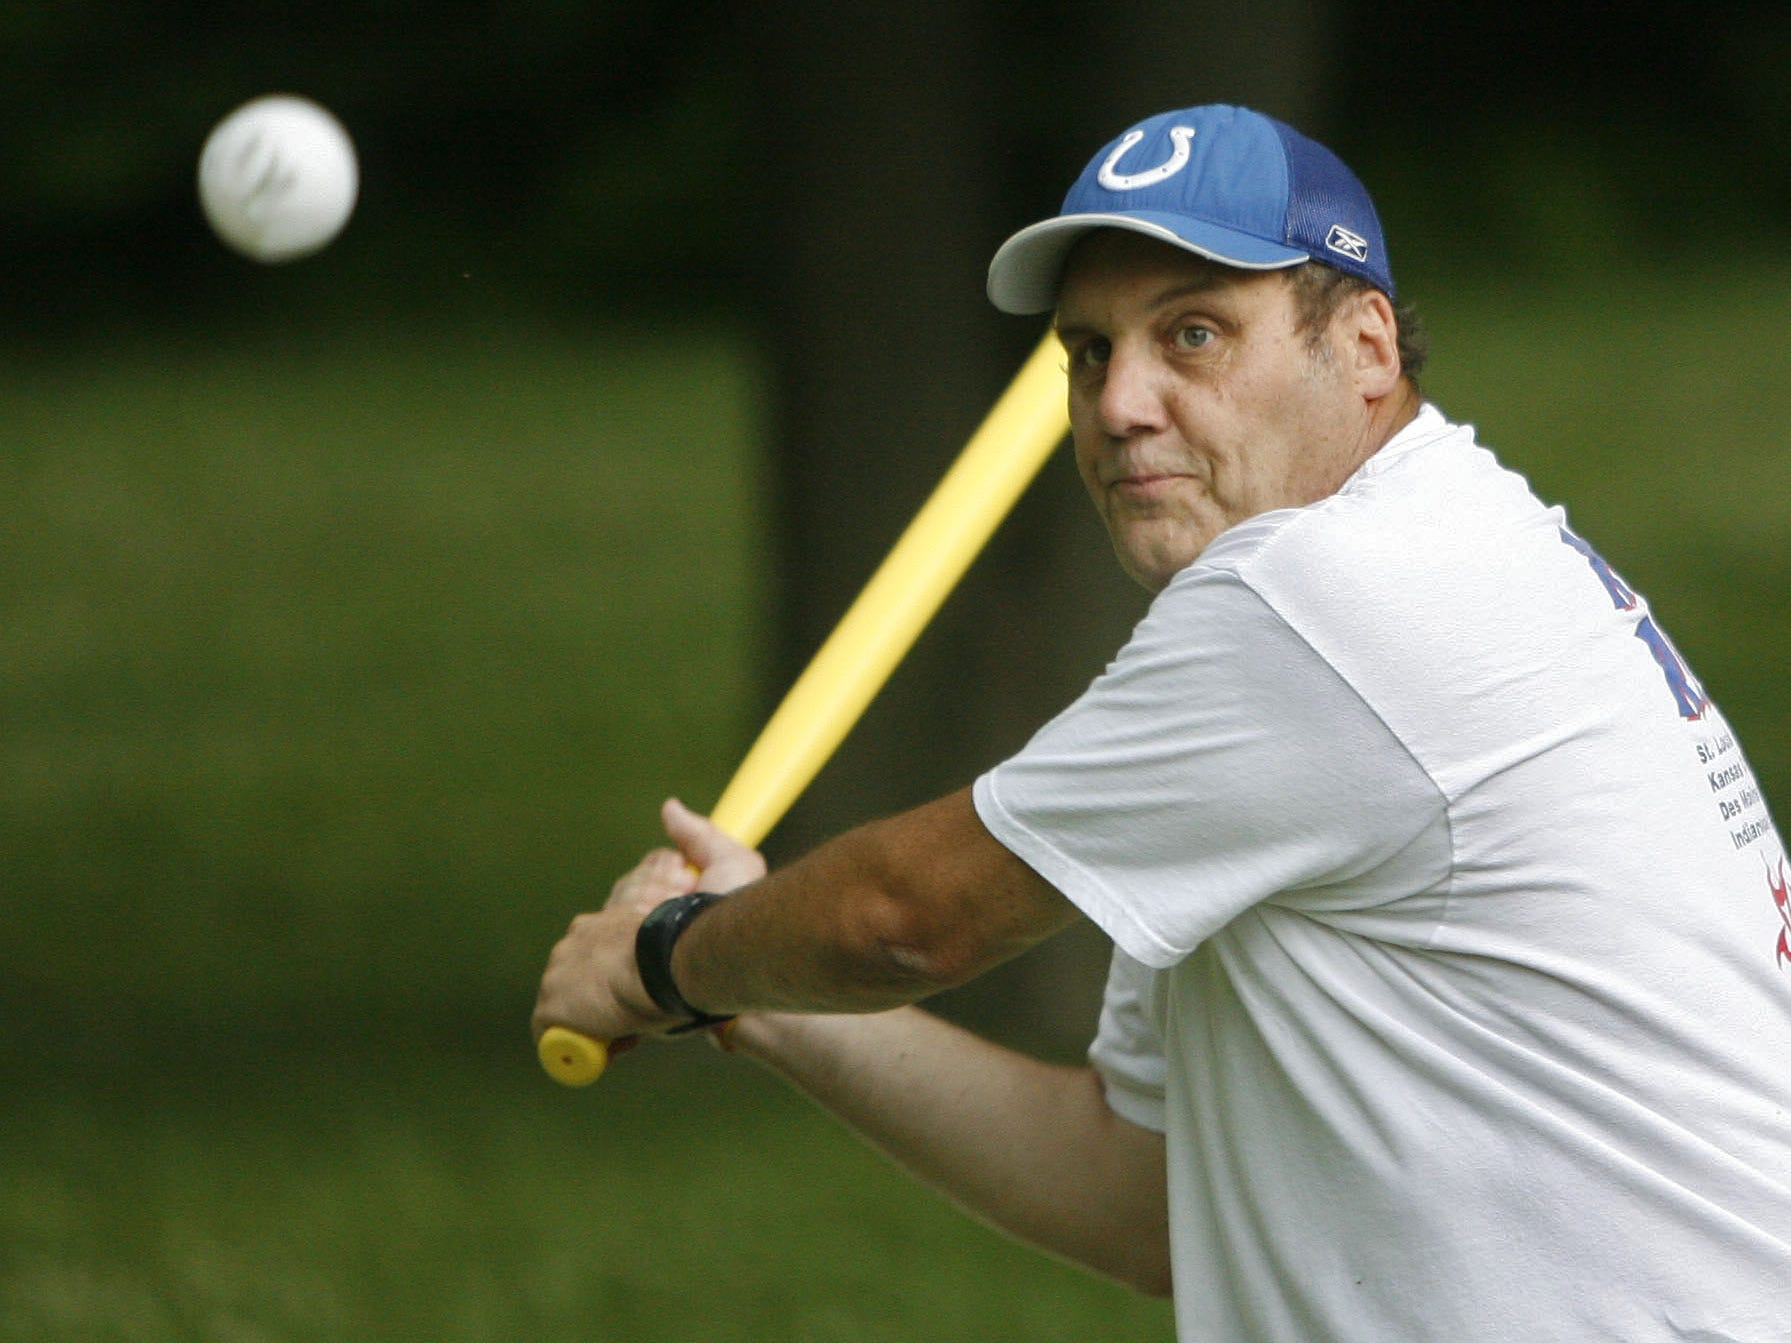 IndyStar sports writer Terry Hutchens learned about a new twist on an old game, Wiffle ball. He played it with experienced Wiffle ball players at Ellenberger Park in June of 2009.